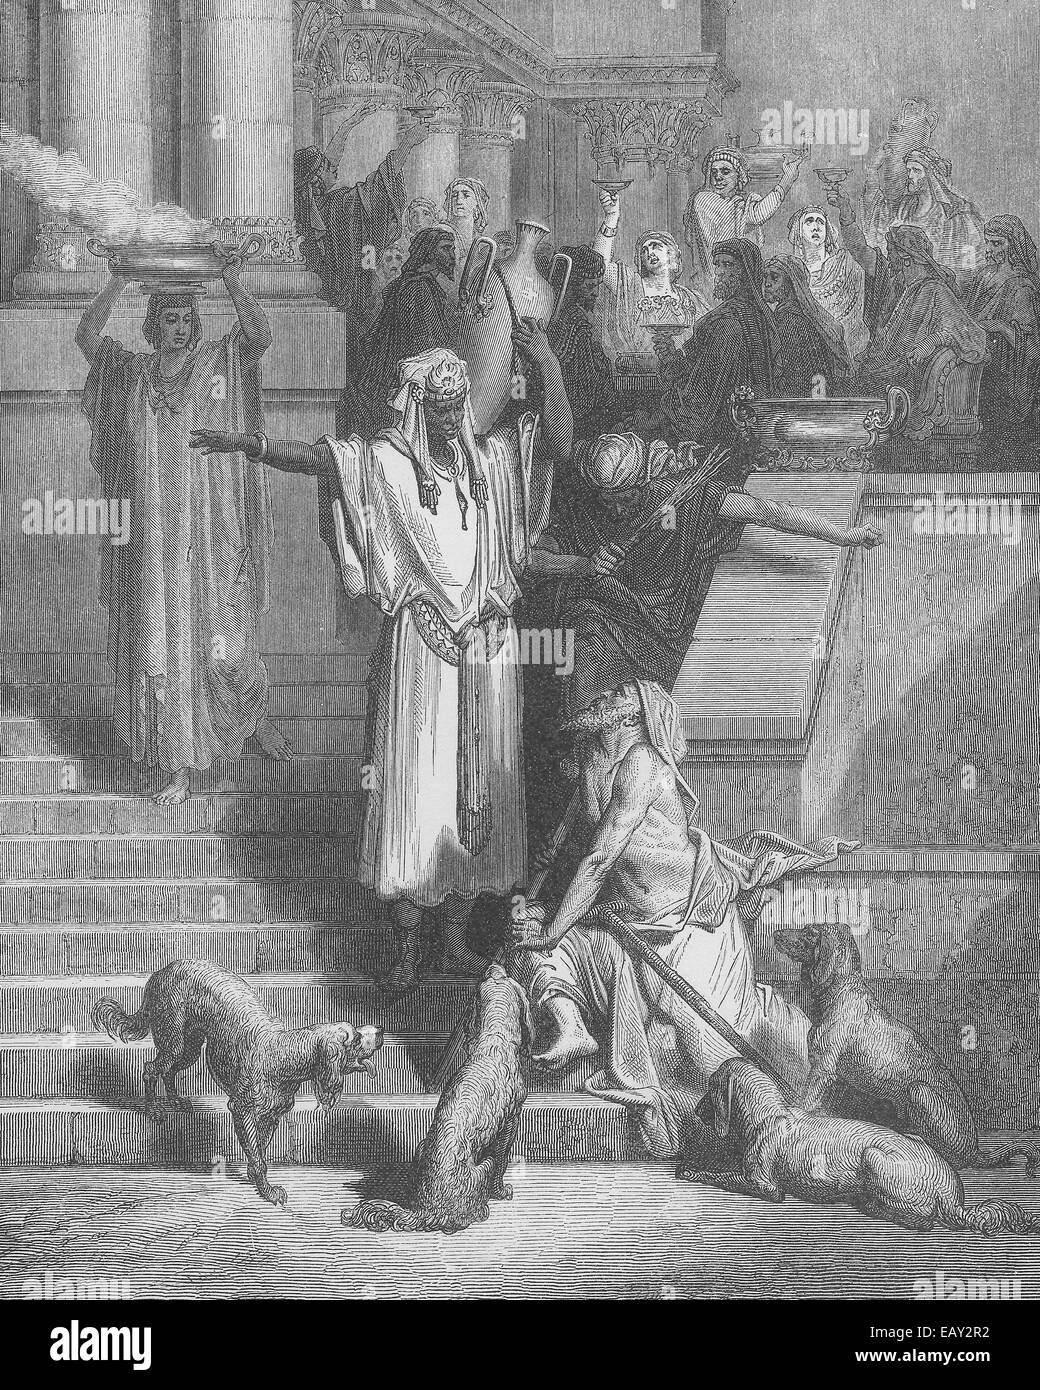 Lazarus and the Rich Man, New Testament Parable - Stock Image